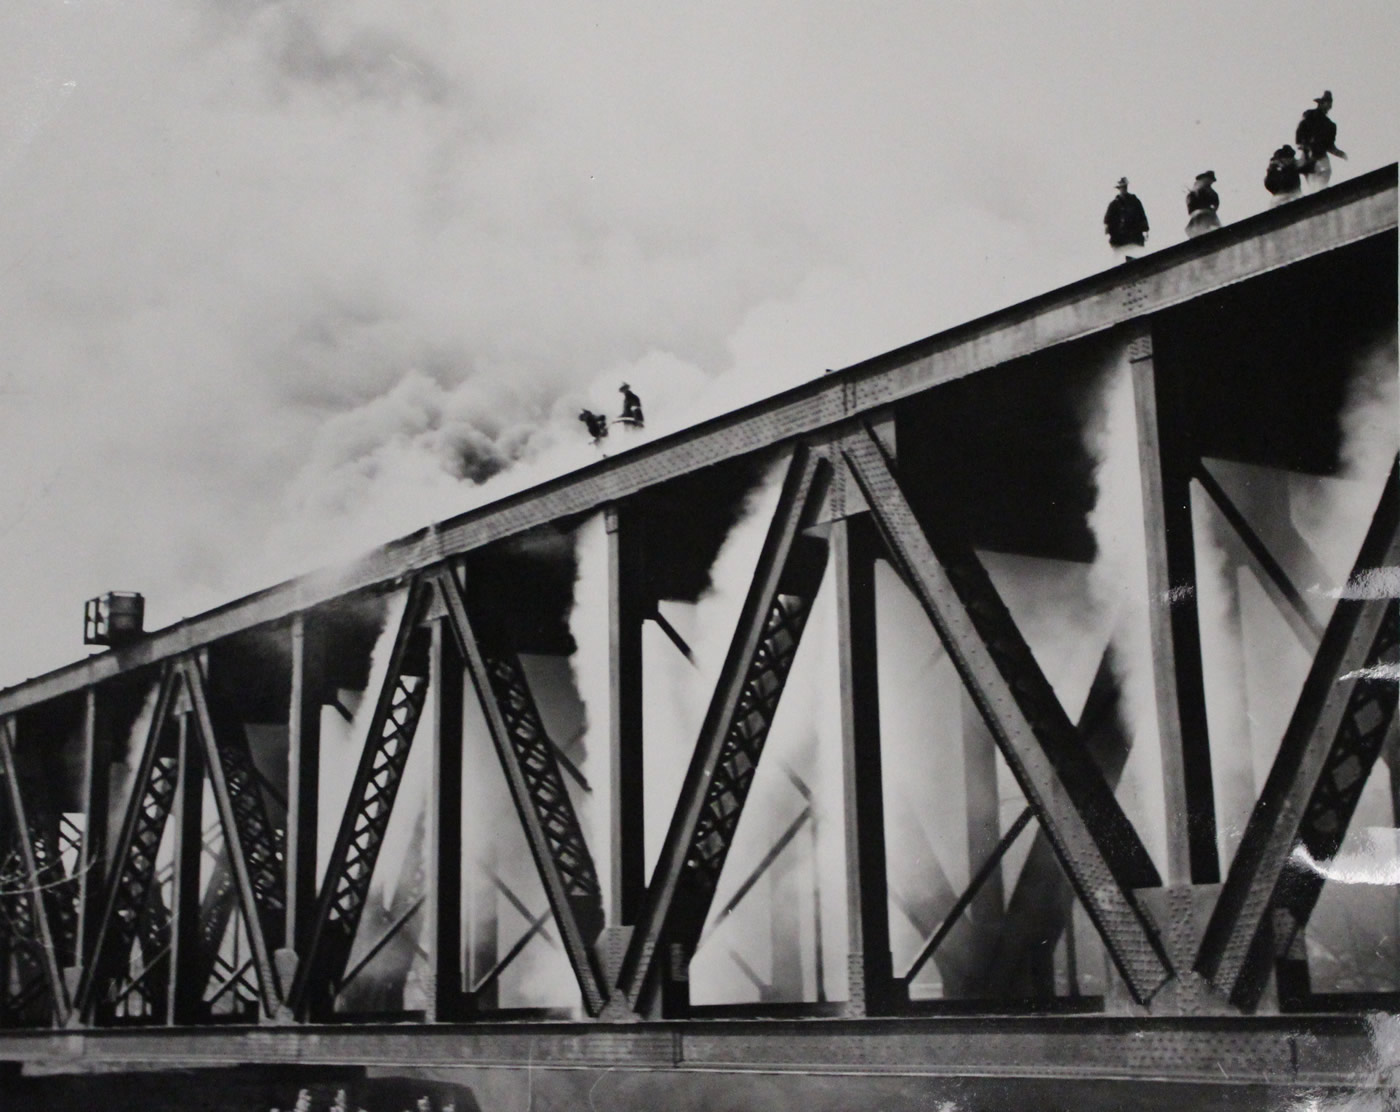 Trestle Bridge Fire